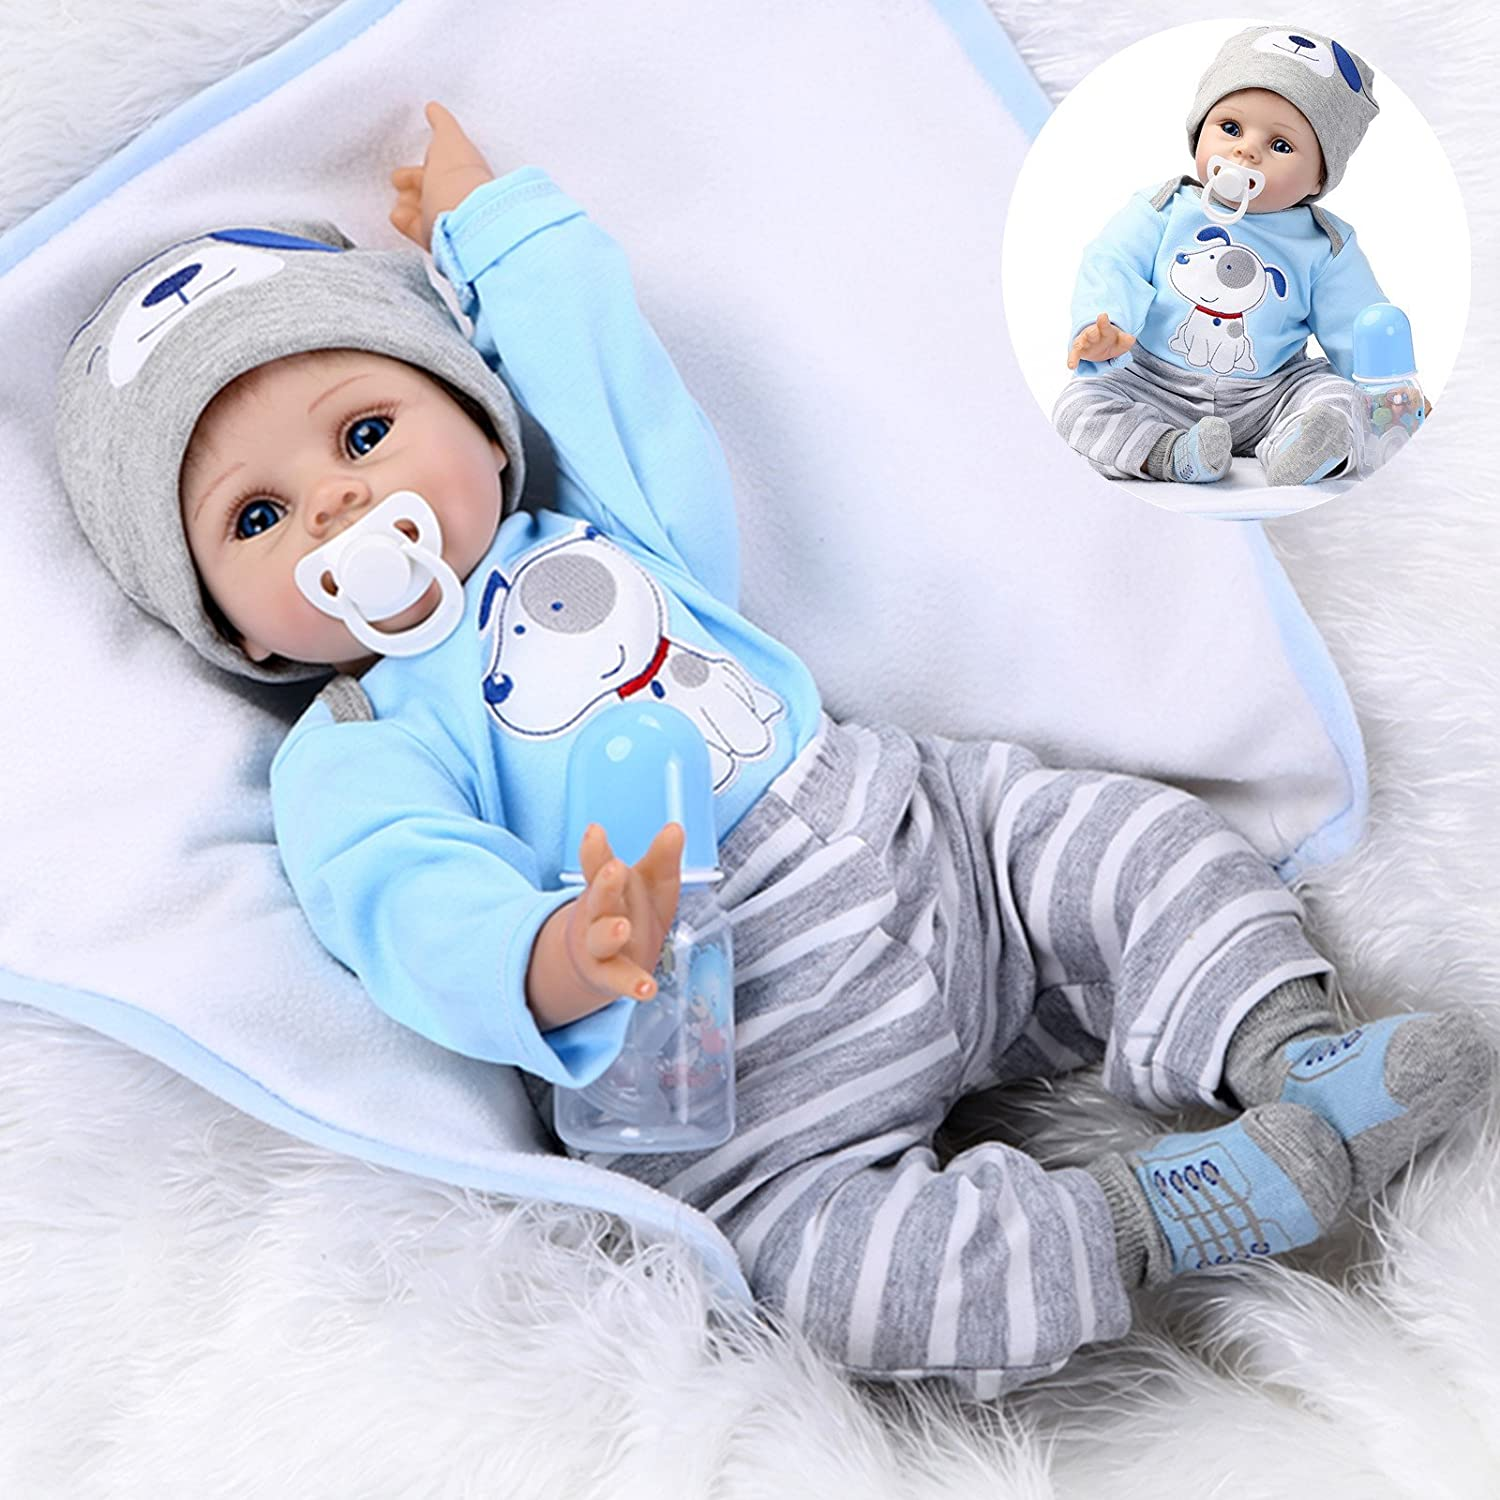 Amazon Com Realistic Reborn Baby Dolls Boy Lifelike Silicone Vinyl 22 Inches 55 Cm Weighted Body Wearing Toy Blue Dog Cute Doll Eyes Open Gift Set Toys Games